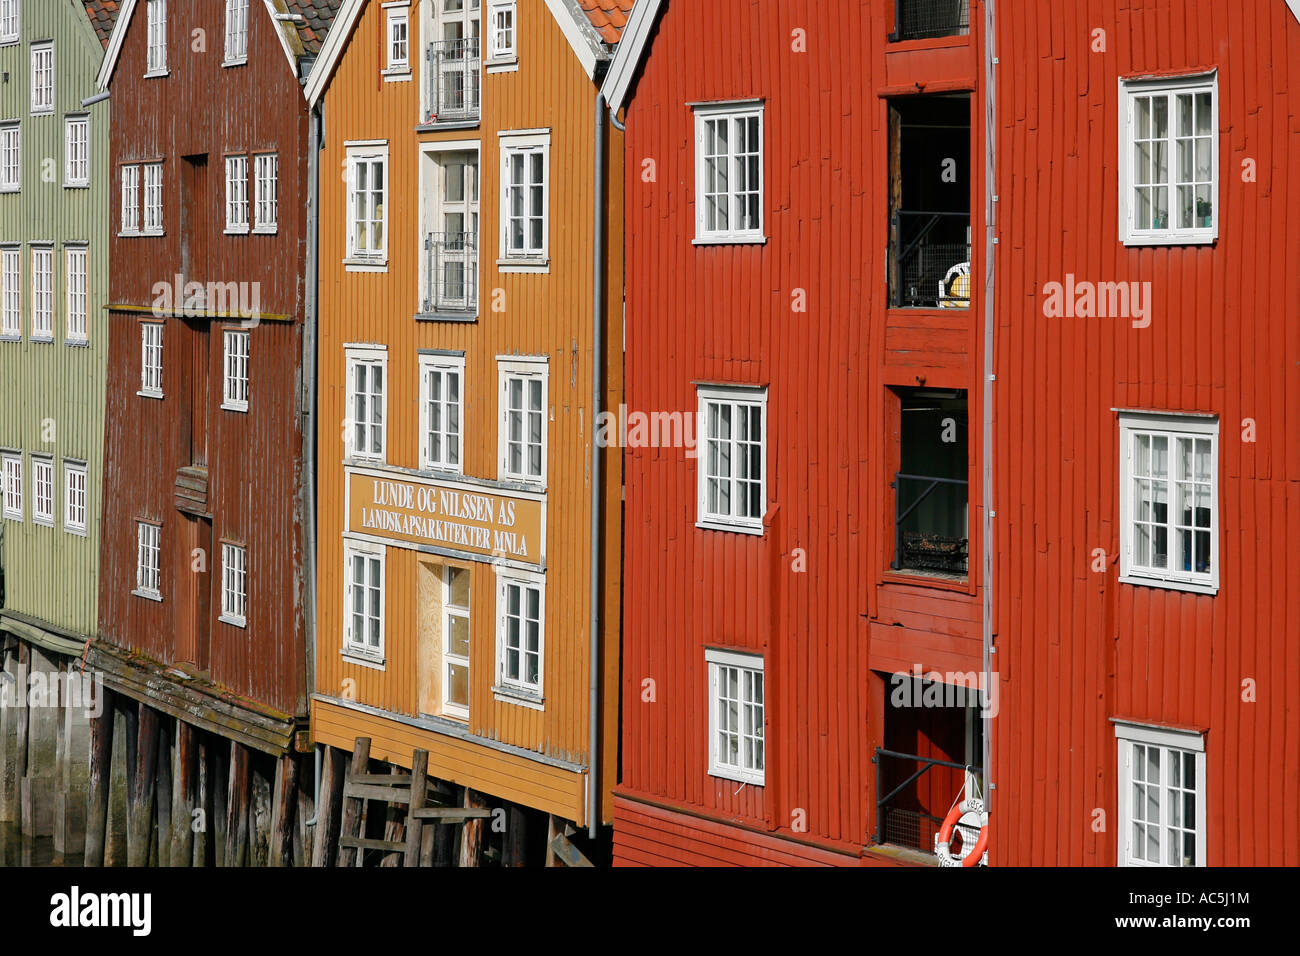 Bryggen Trondheim Norway Europe Stock Photo